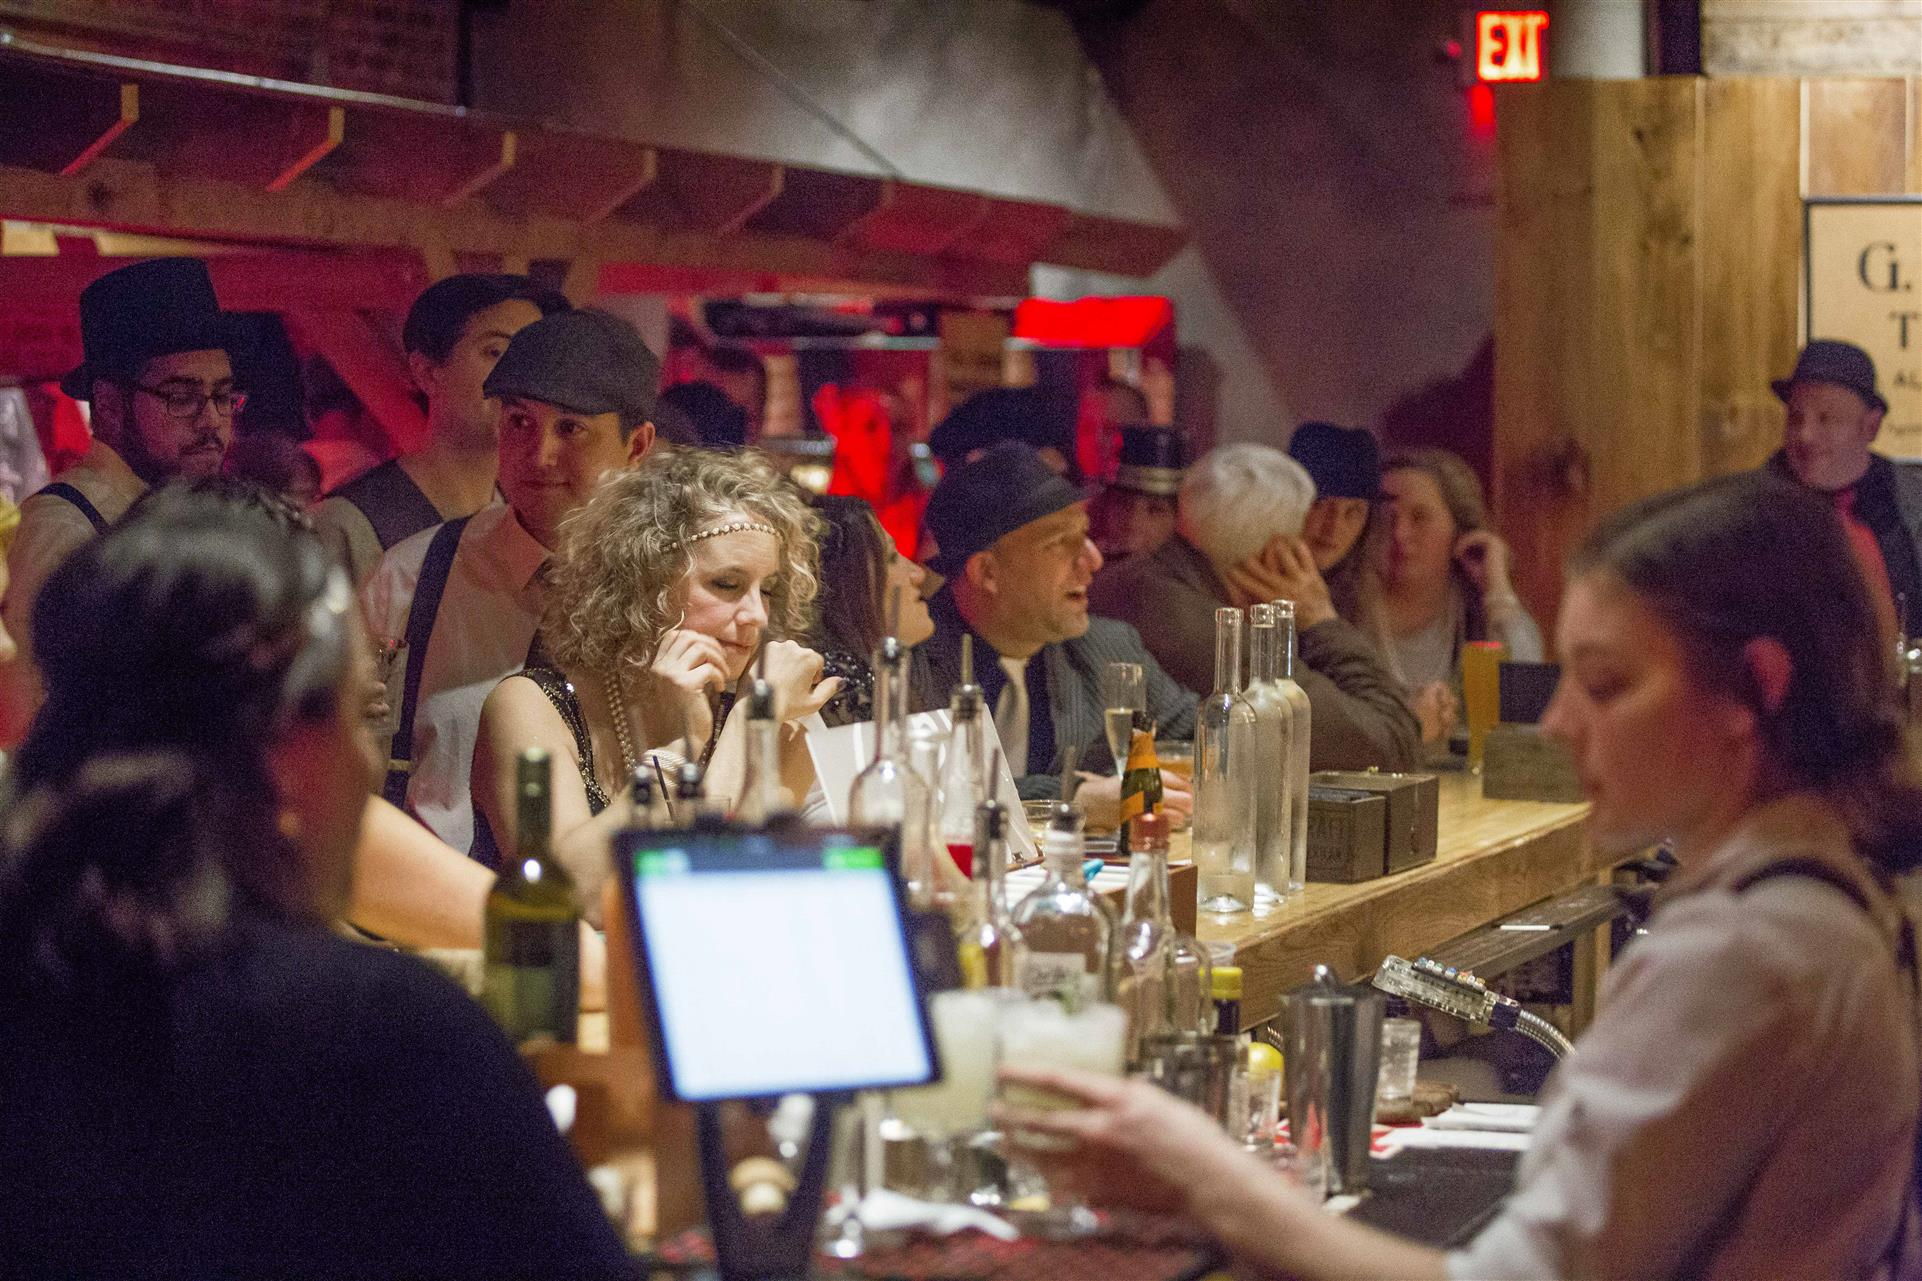 bar shot of ladies and men dressed in 1920s clothing